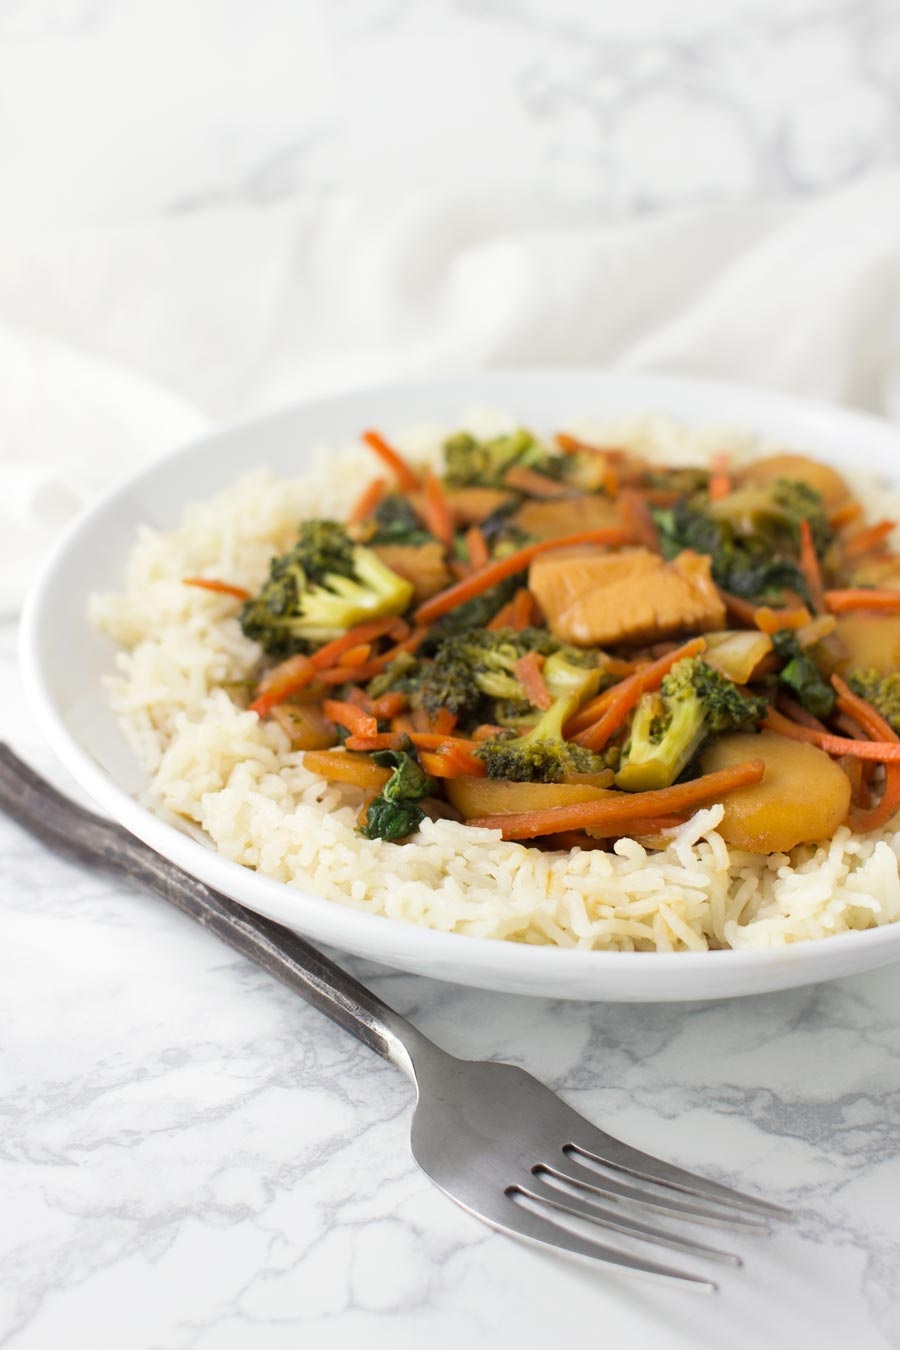 Chicken Stir-Fry with Cauliflower Rice recipe from acleanplate.com #paleo #aip #glutenfree